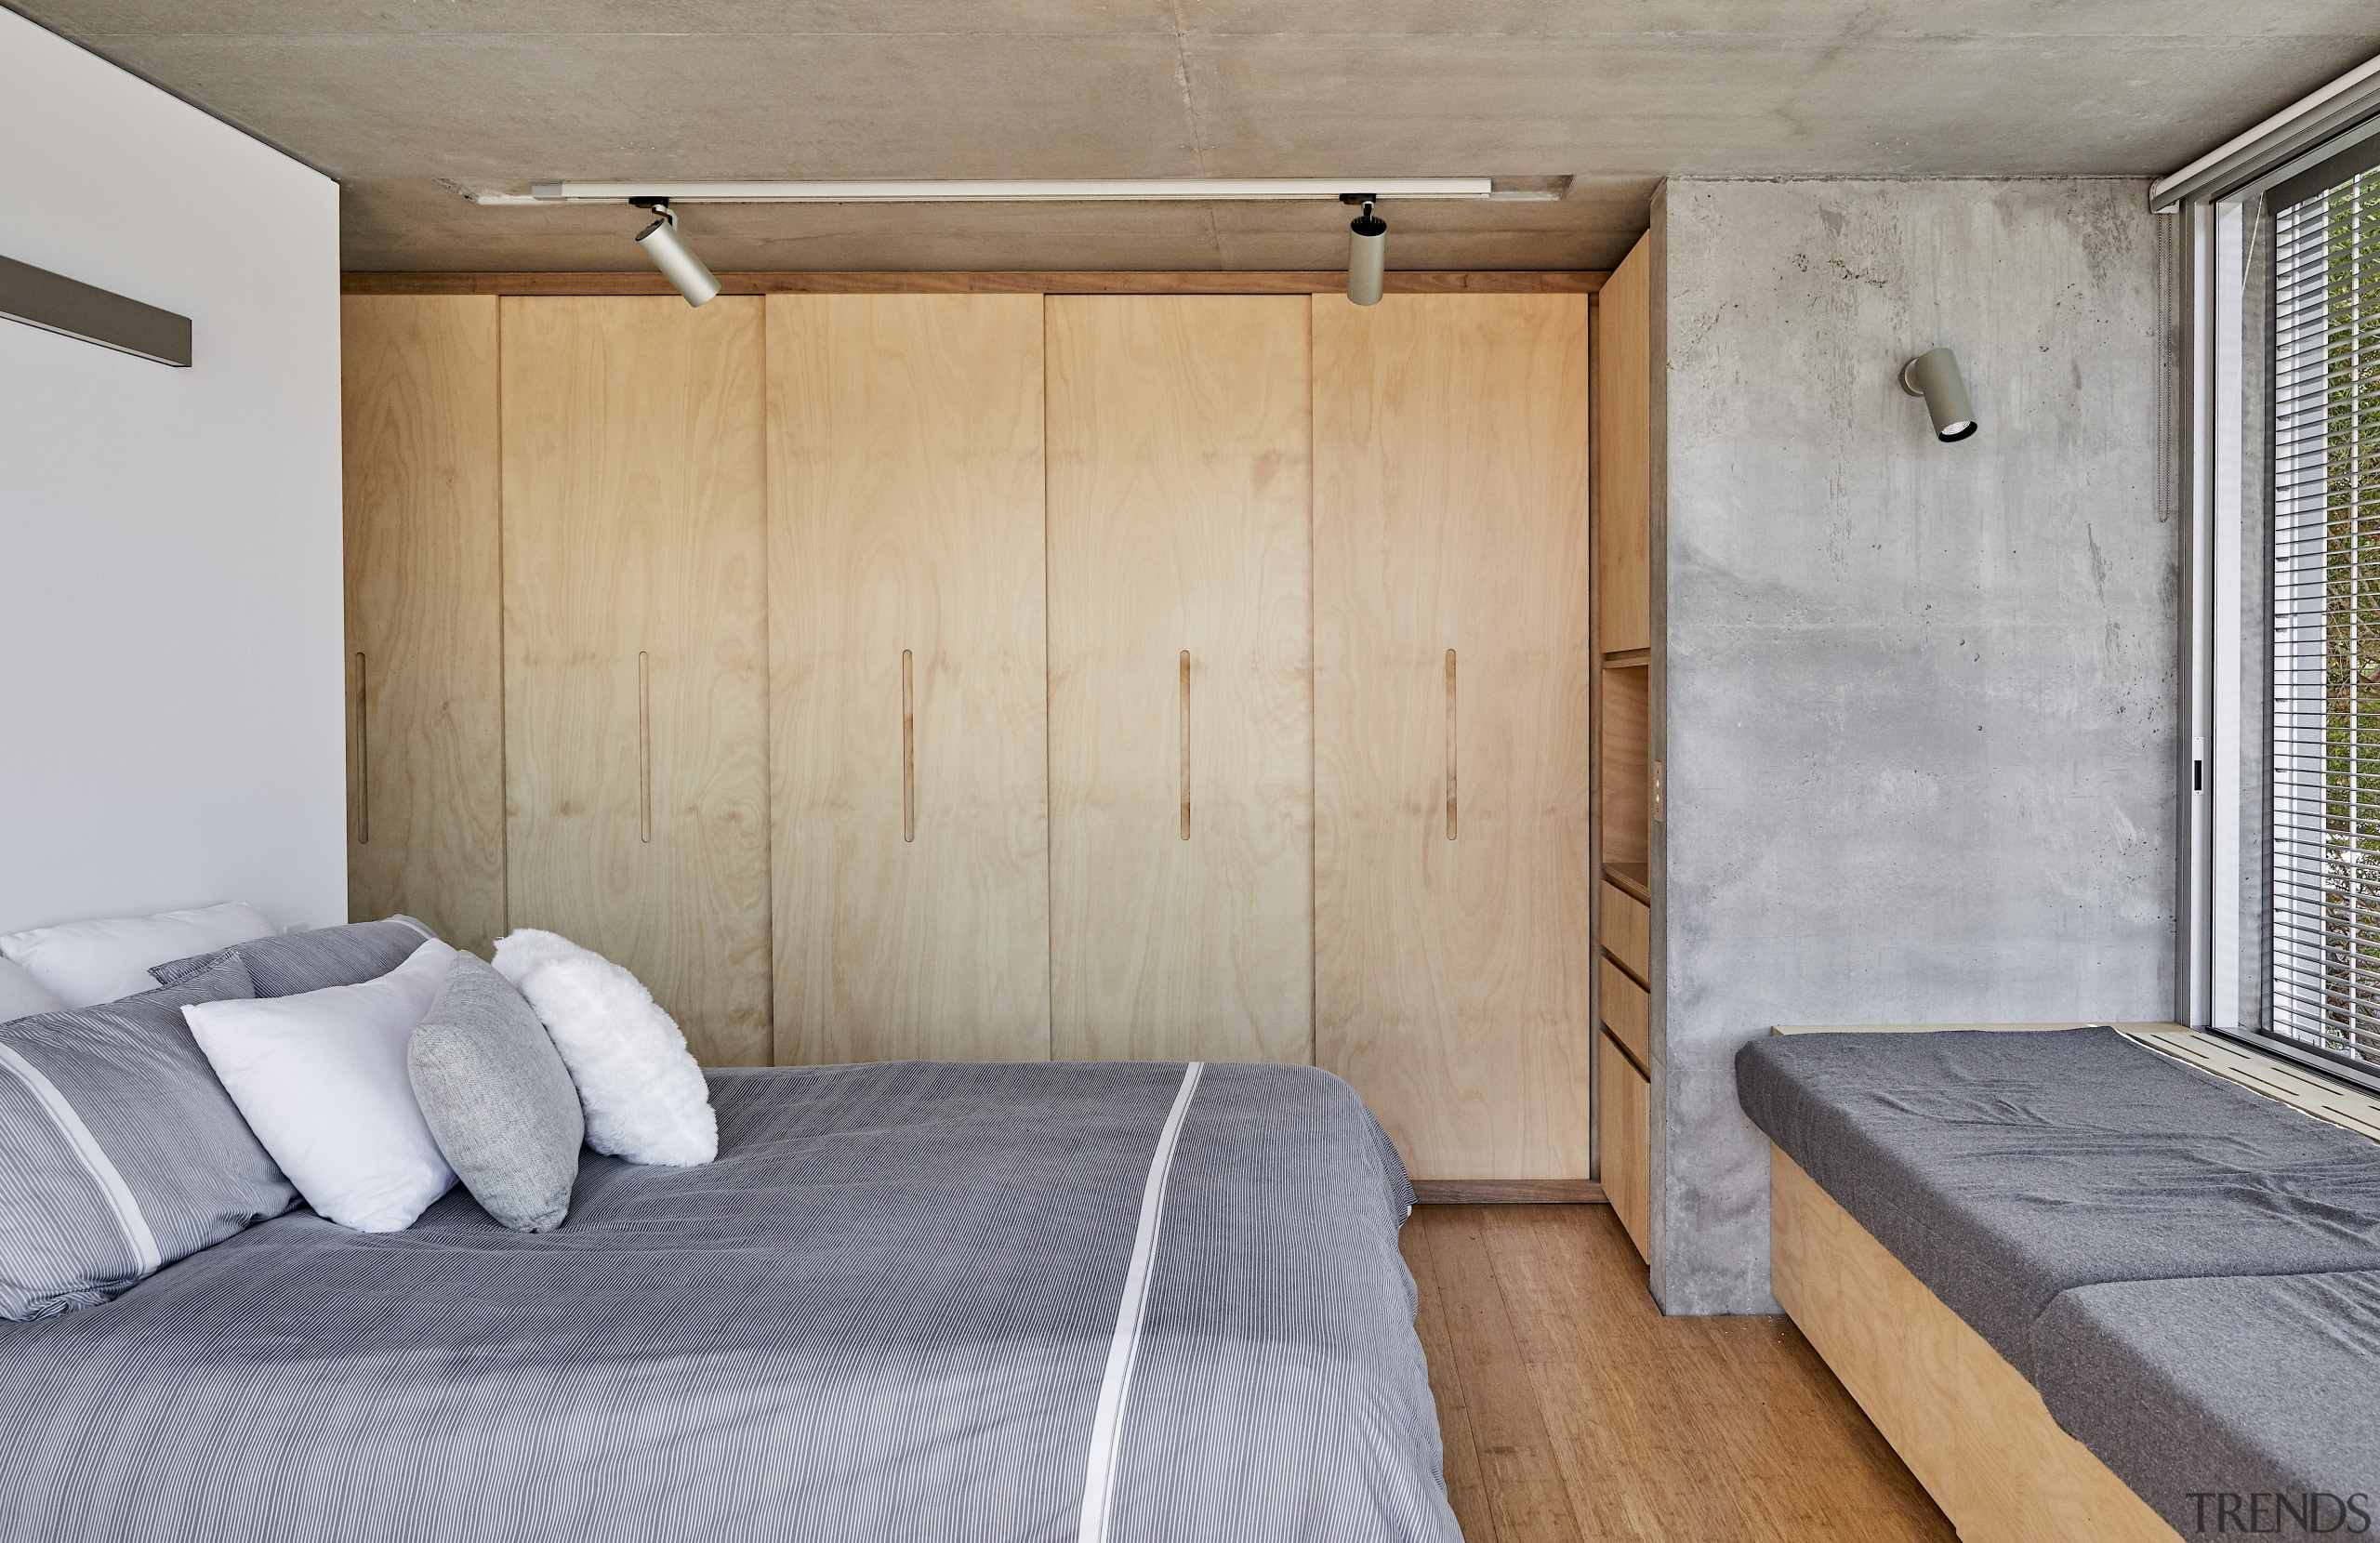 The bedrooms follow the same pared back material